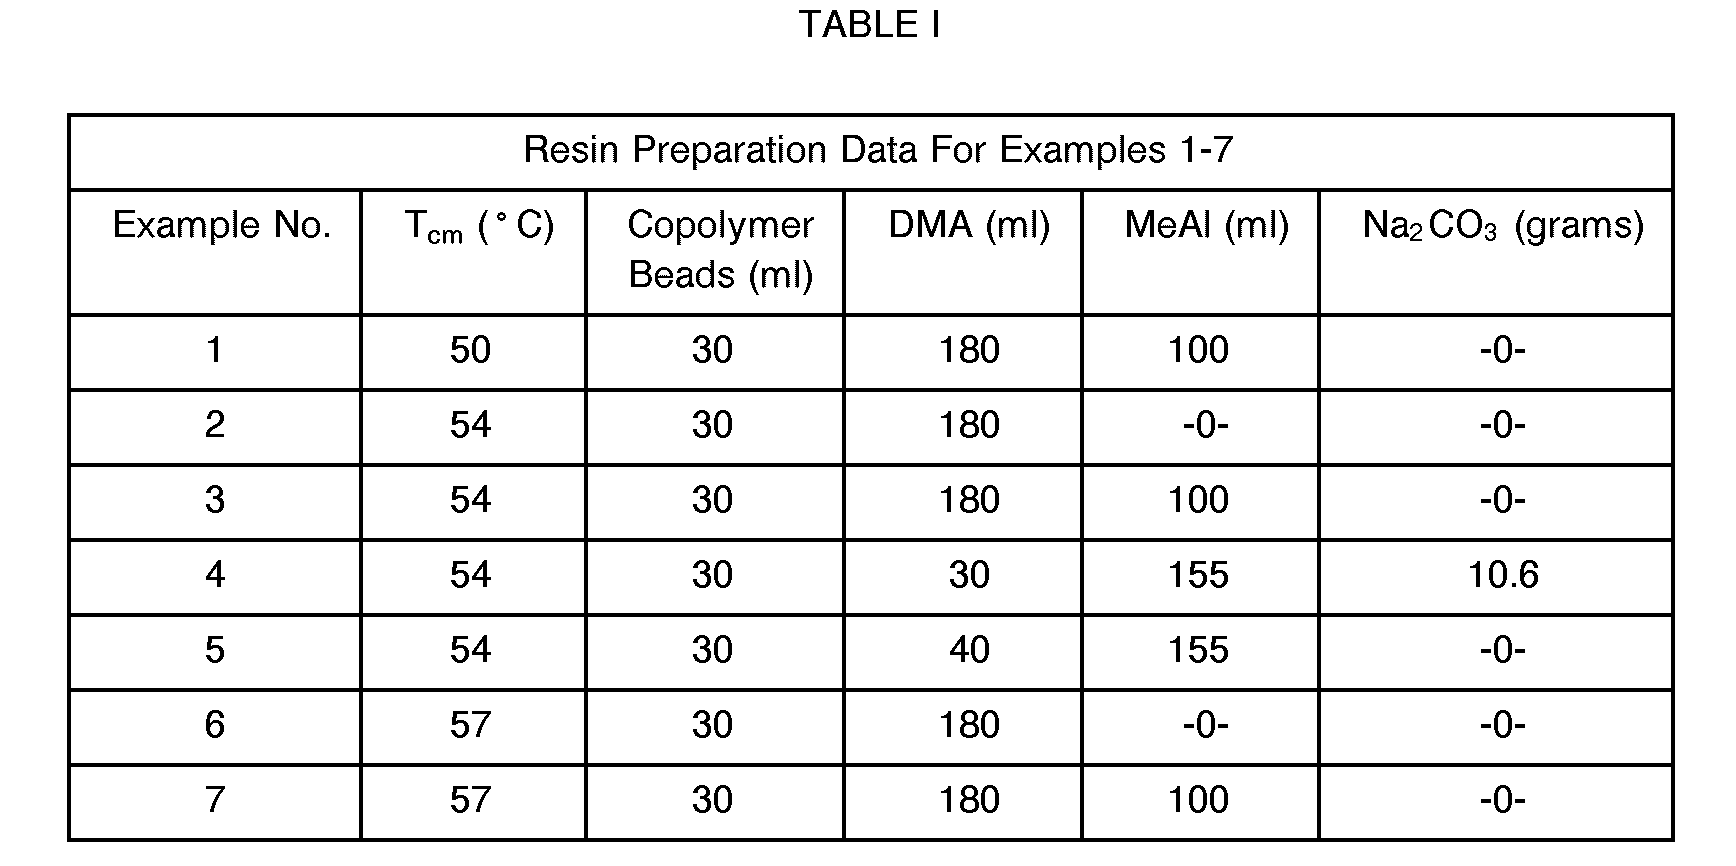 Worksheets Table Of Measurement Gram patent ep0481603a1 separation of weak organic acids from liquid a 10 6 gram measured amount base i e sodium carbonate monohydrate was added to the reactor materials ch